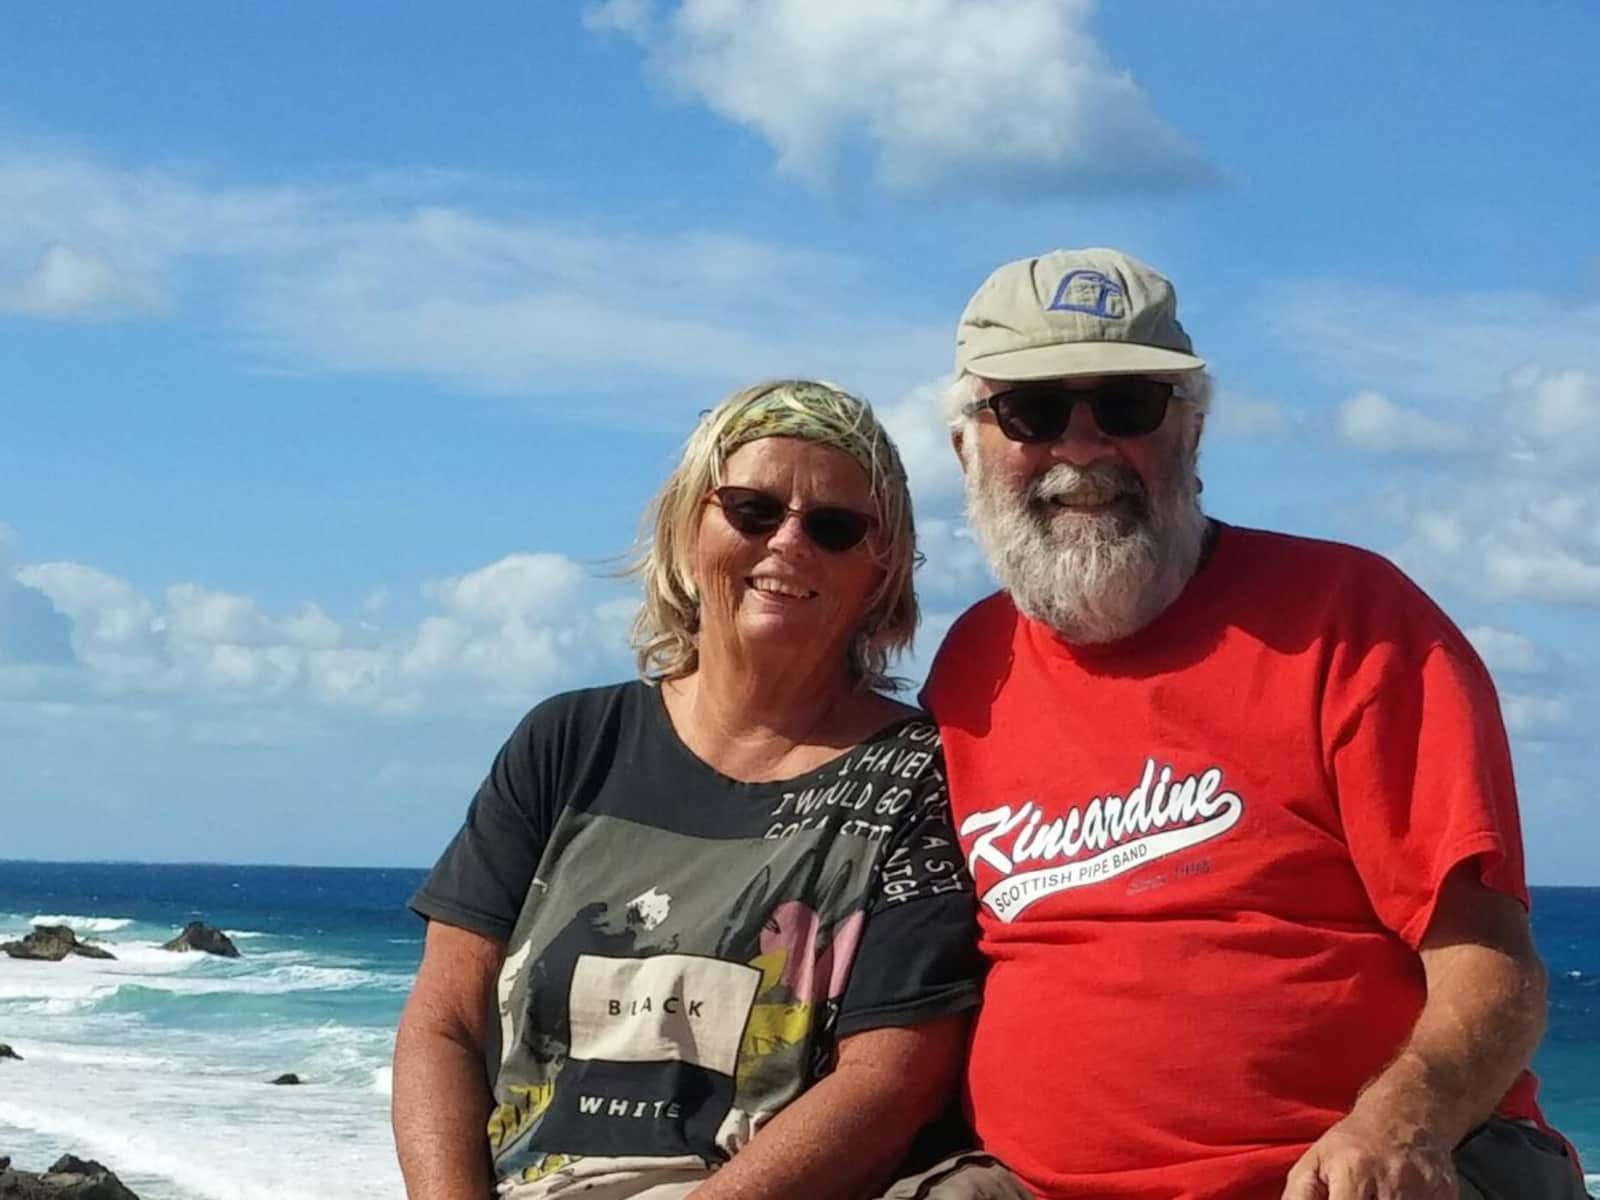 Janet & Jim from Greater Sudbury, Ontario, Canada